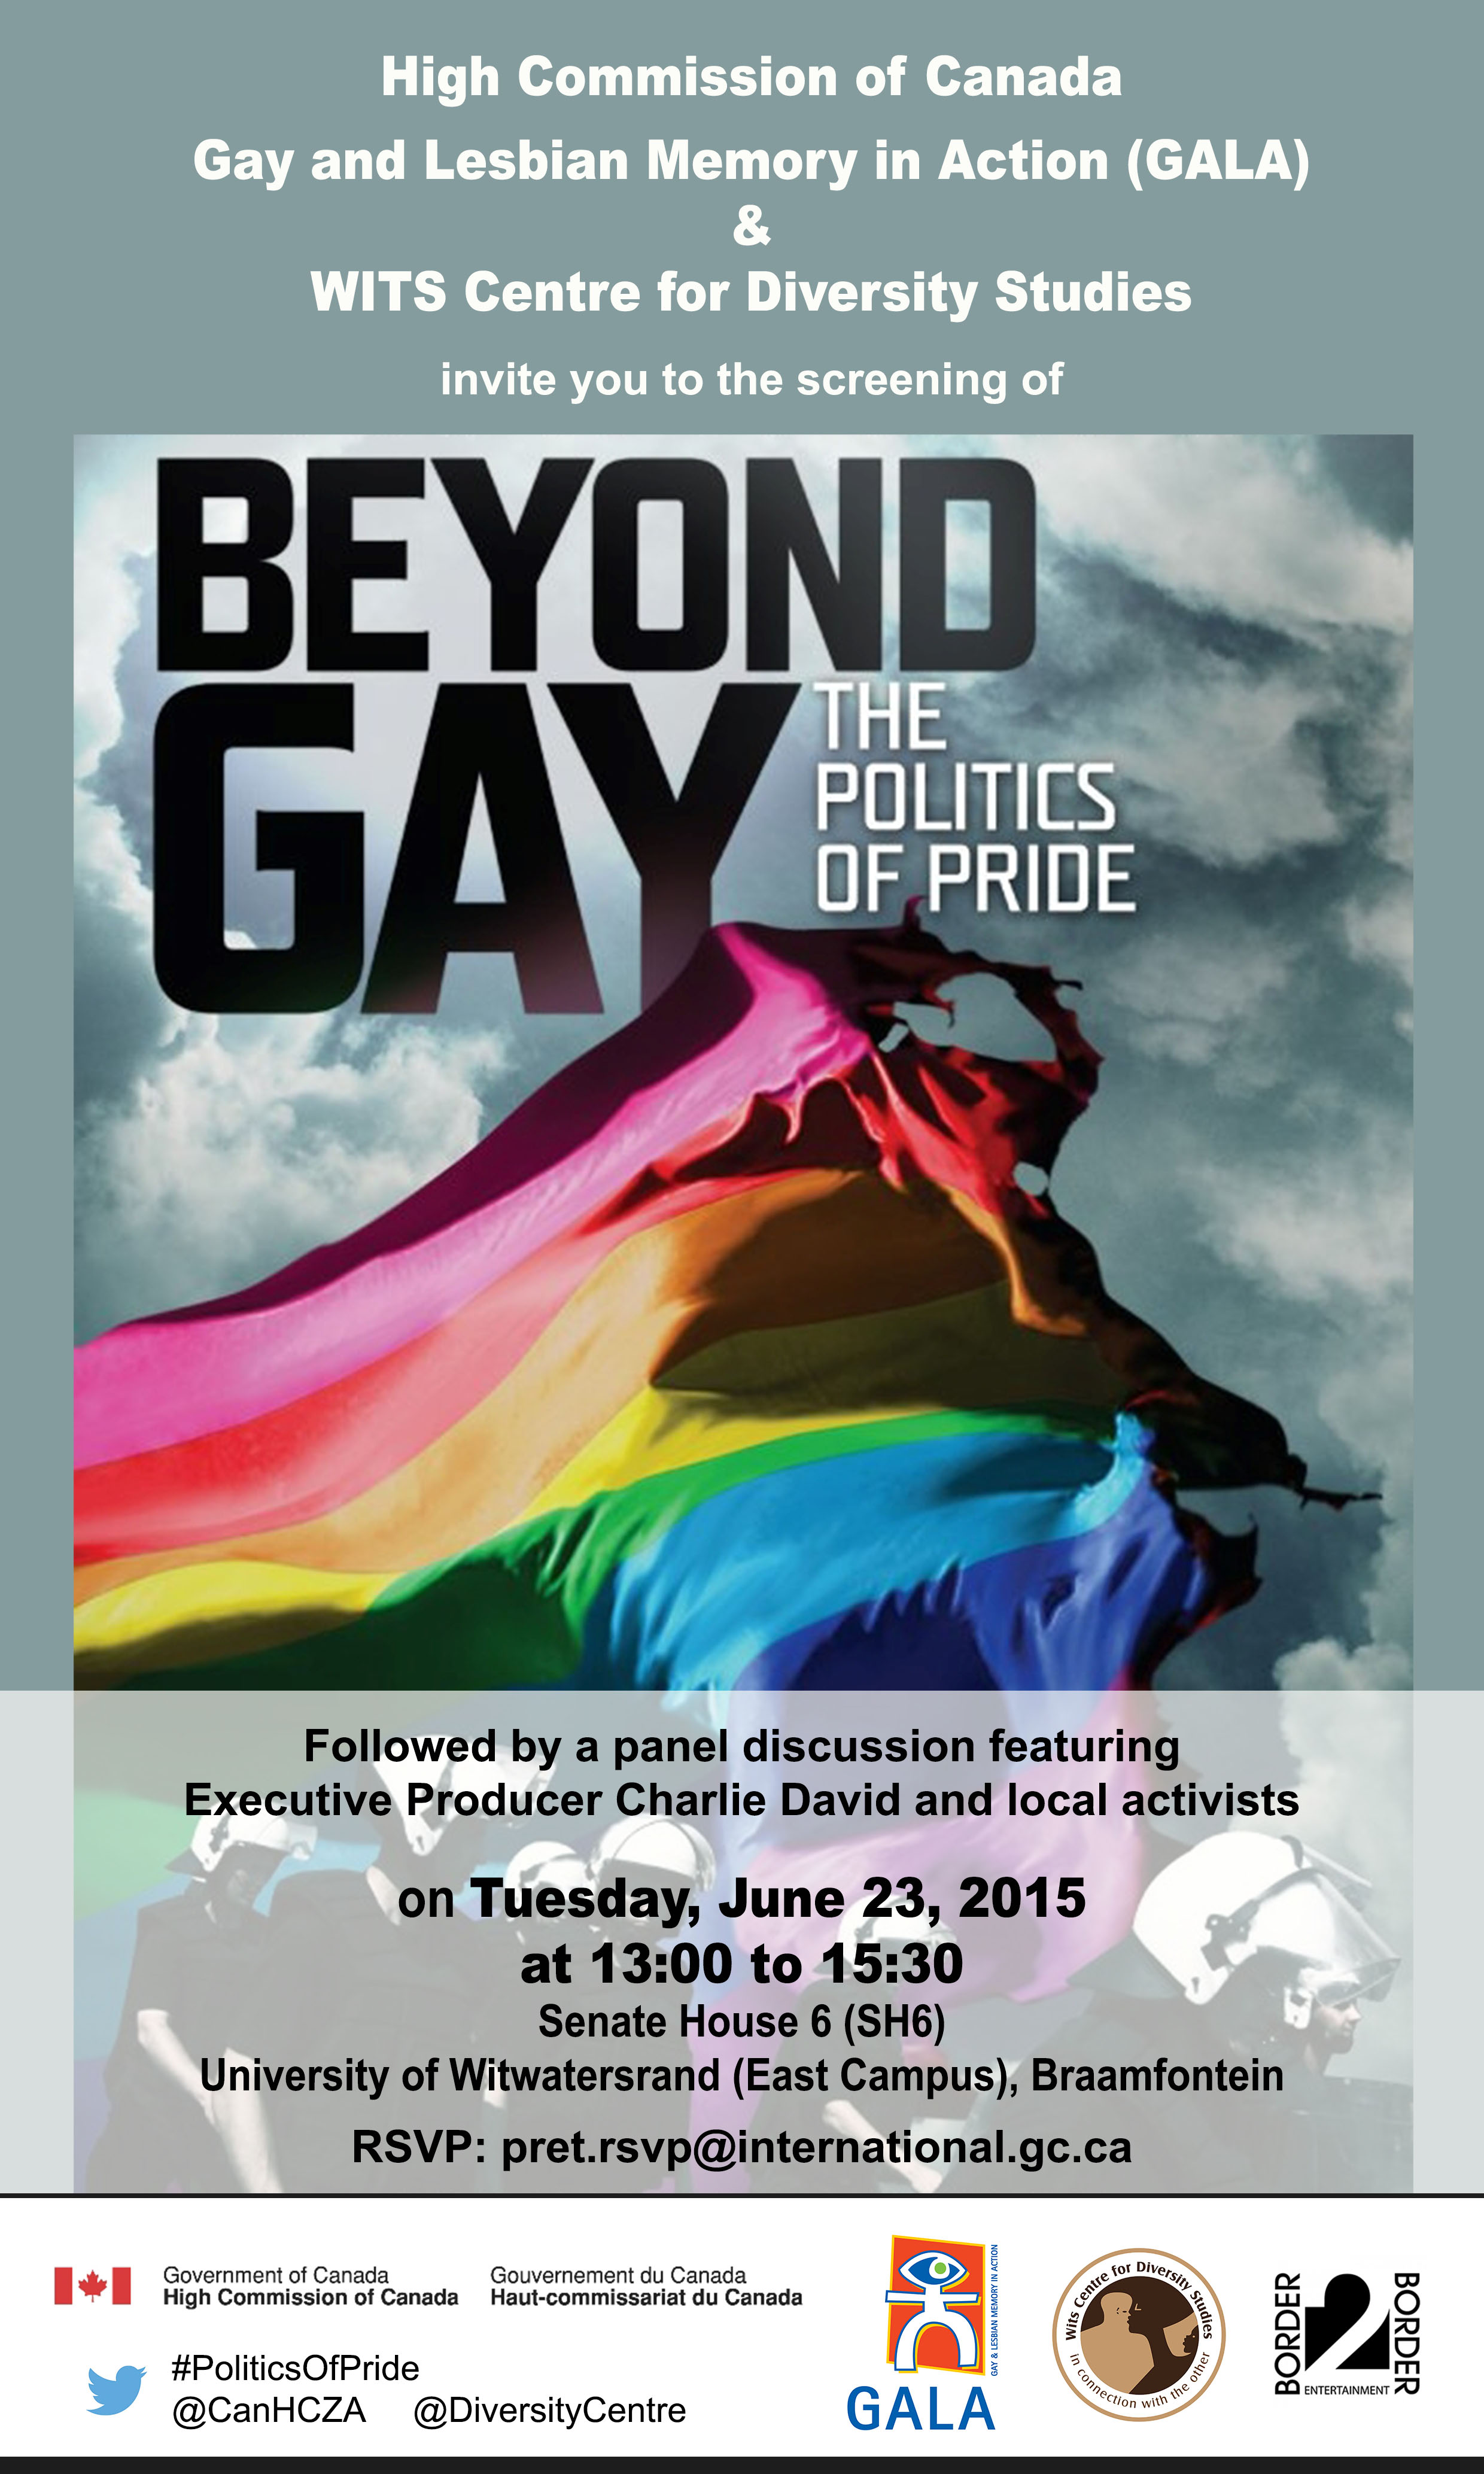 Invitation to screening and discussion Beyond Gay The Politics of Pride